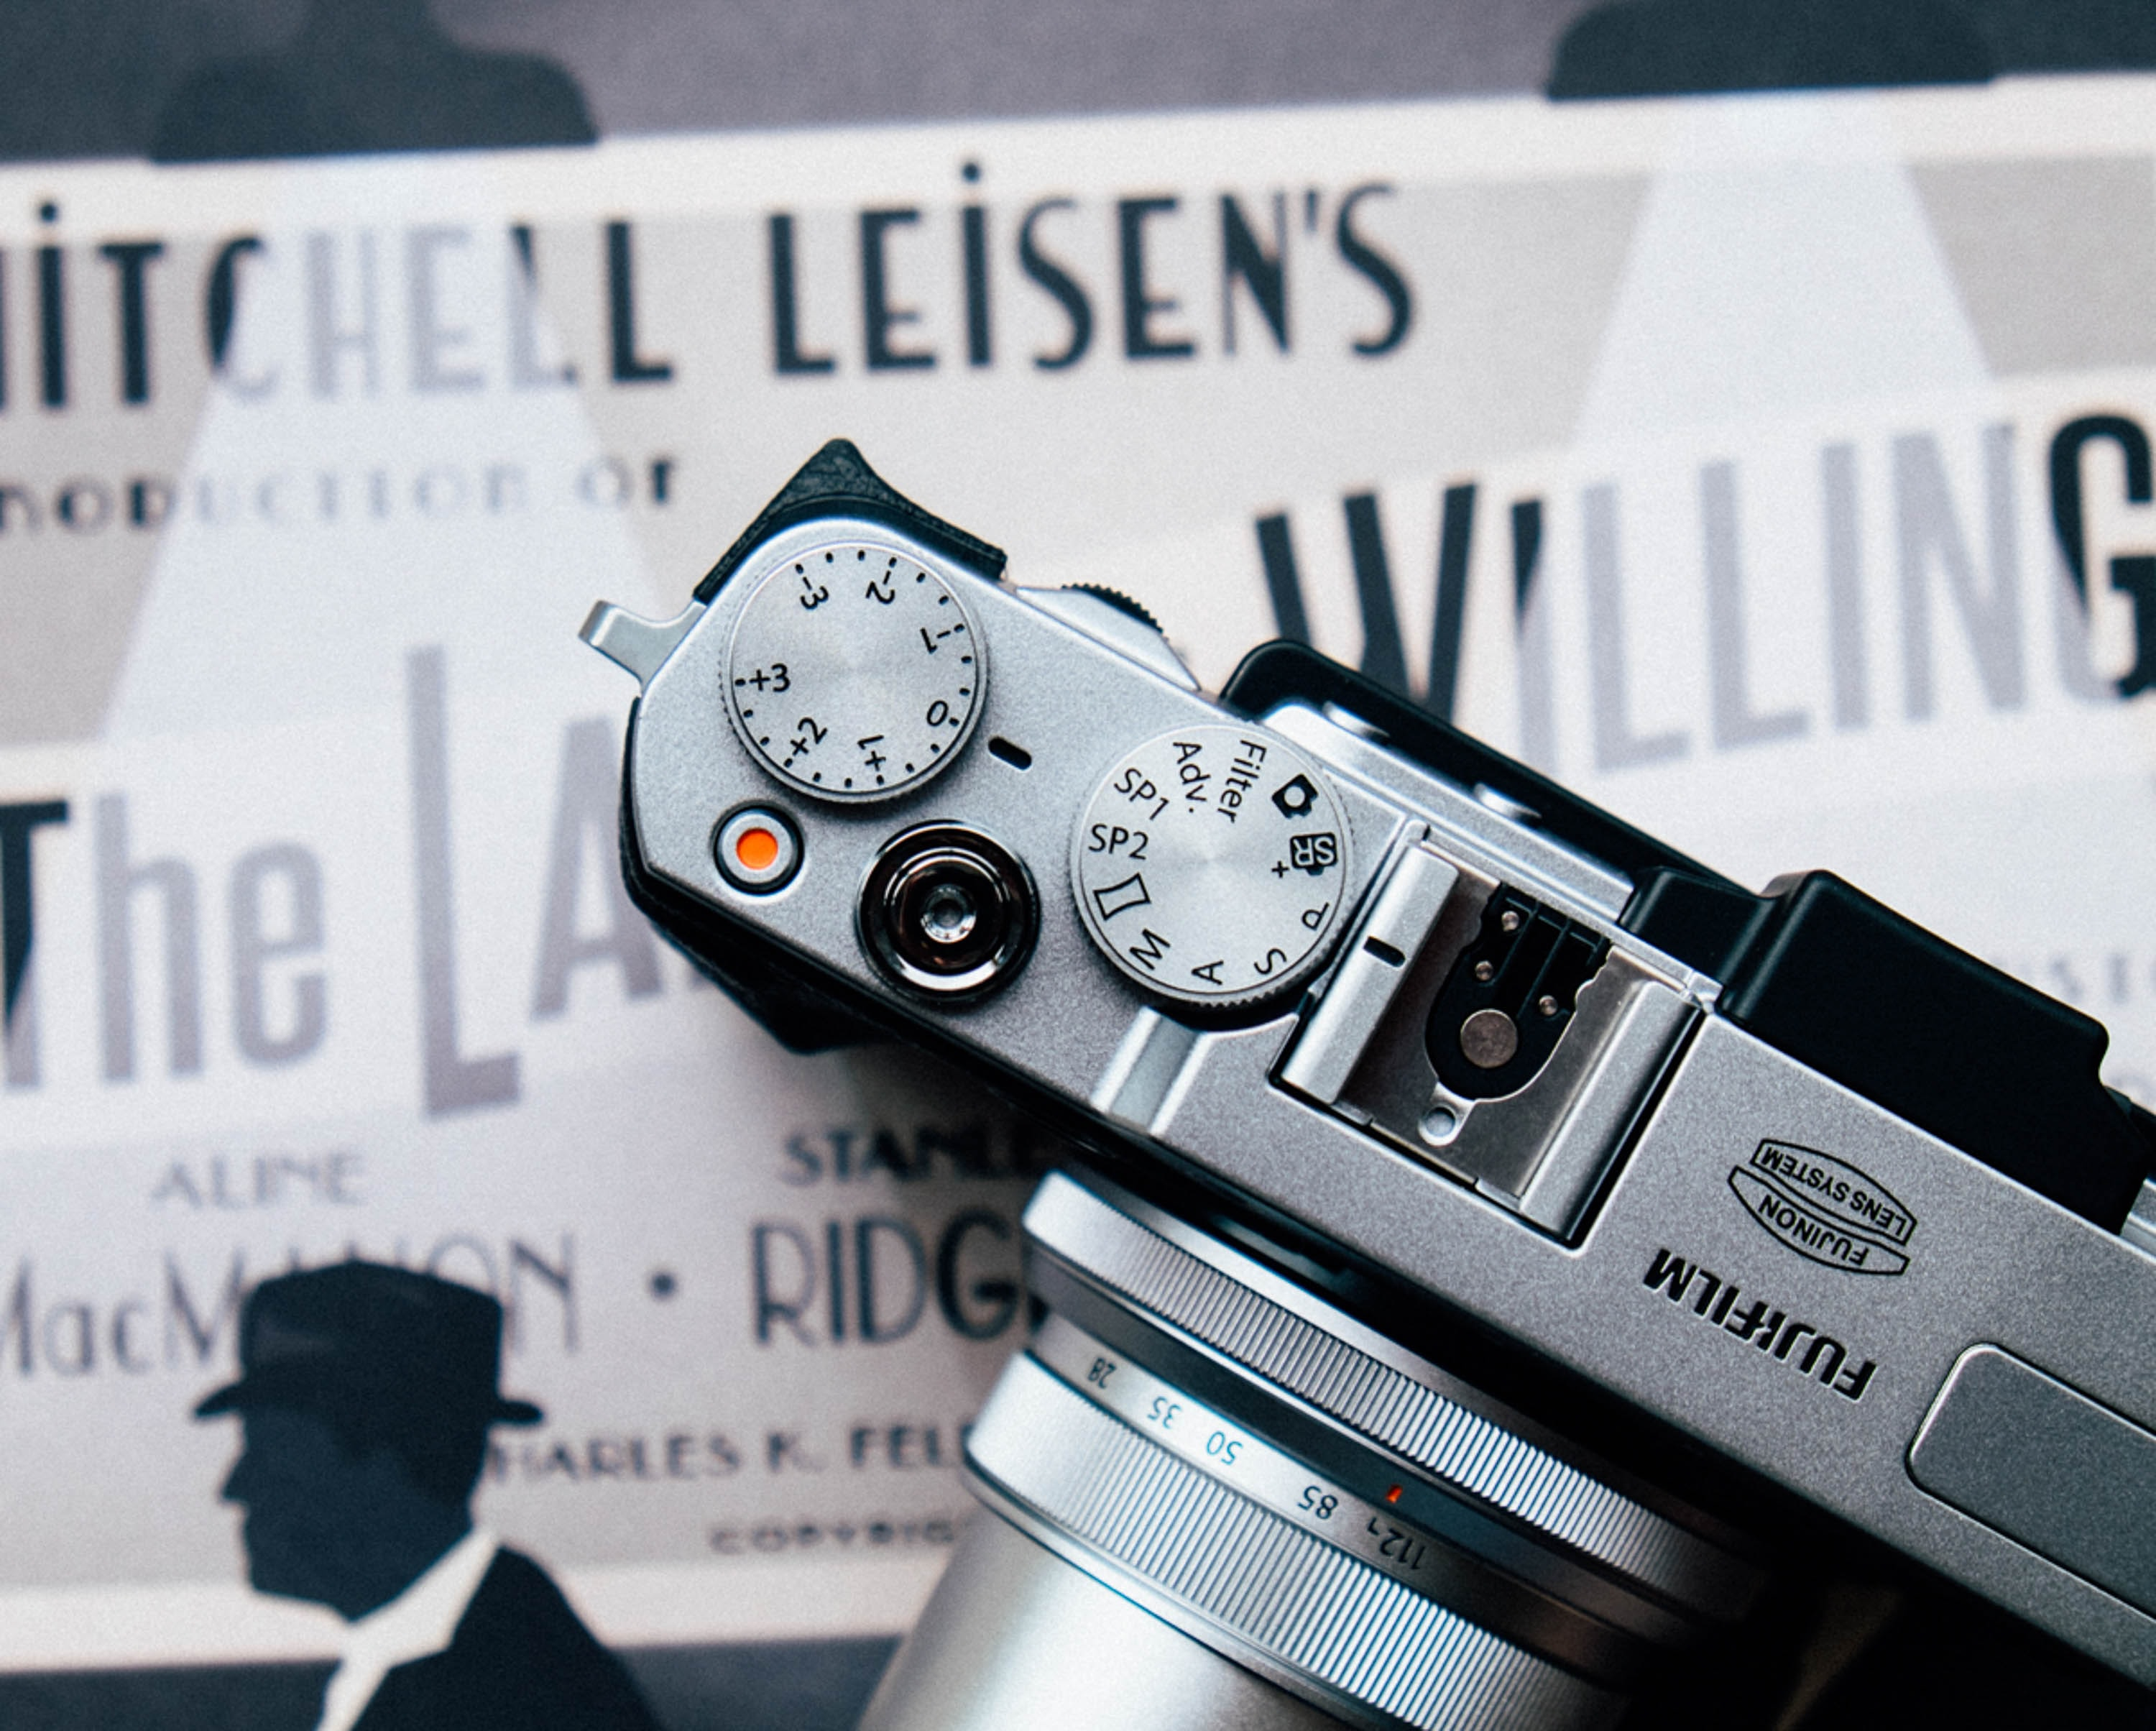 A Fujifilm camera on top of a paper in Southampton